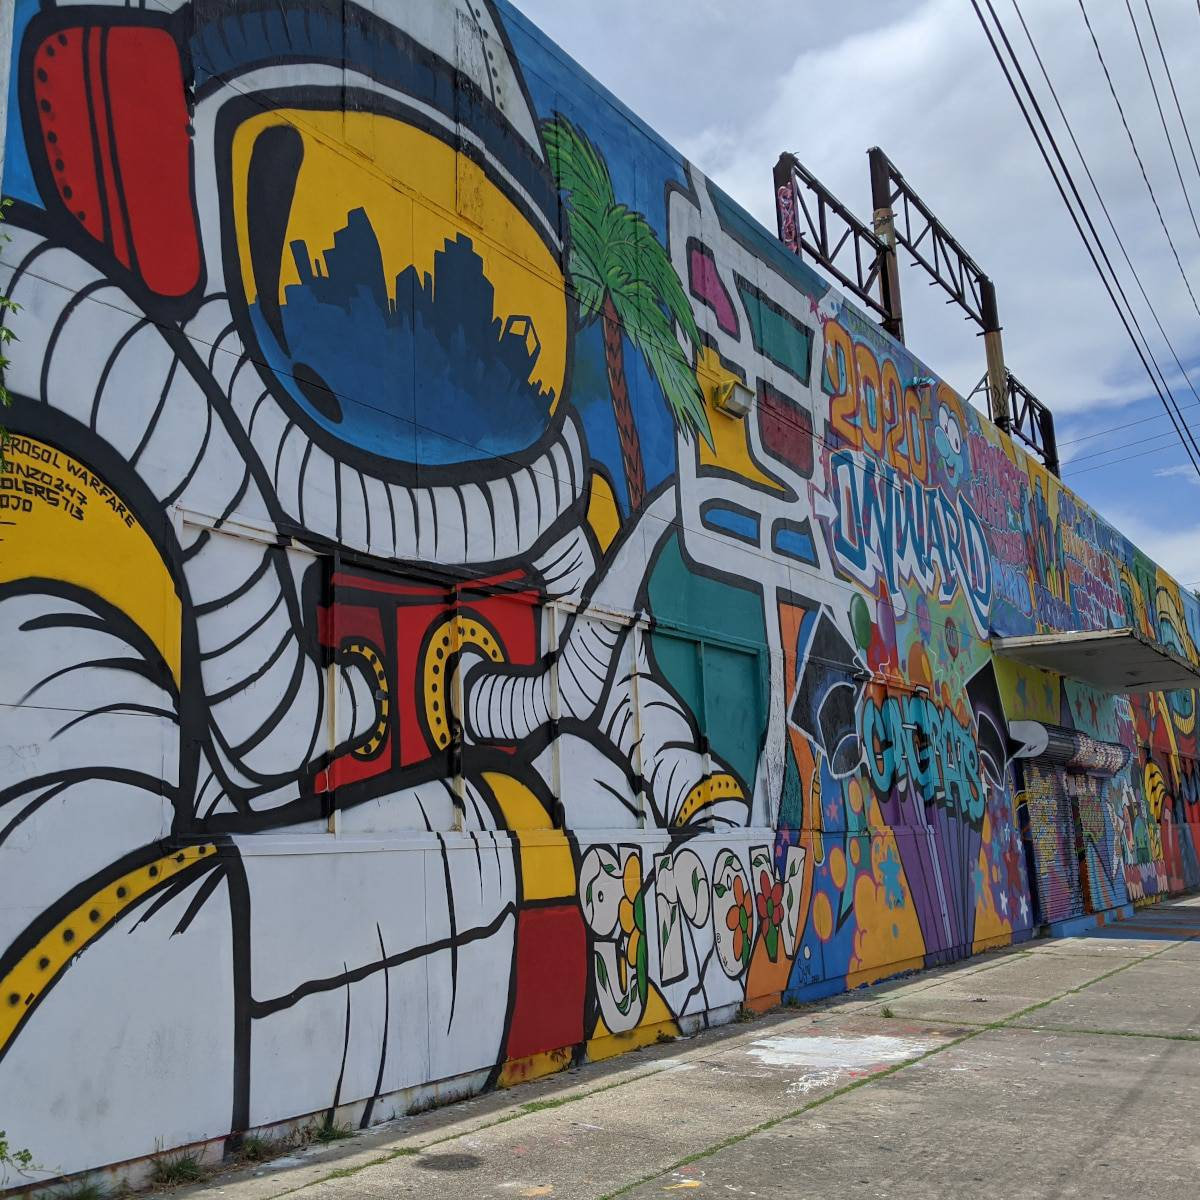 Houston Graffiti Building Astronaut Mural Fun Things to Do in Houston with Kids